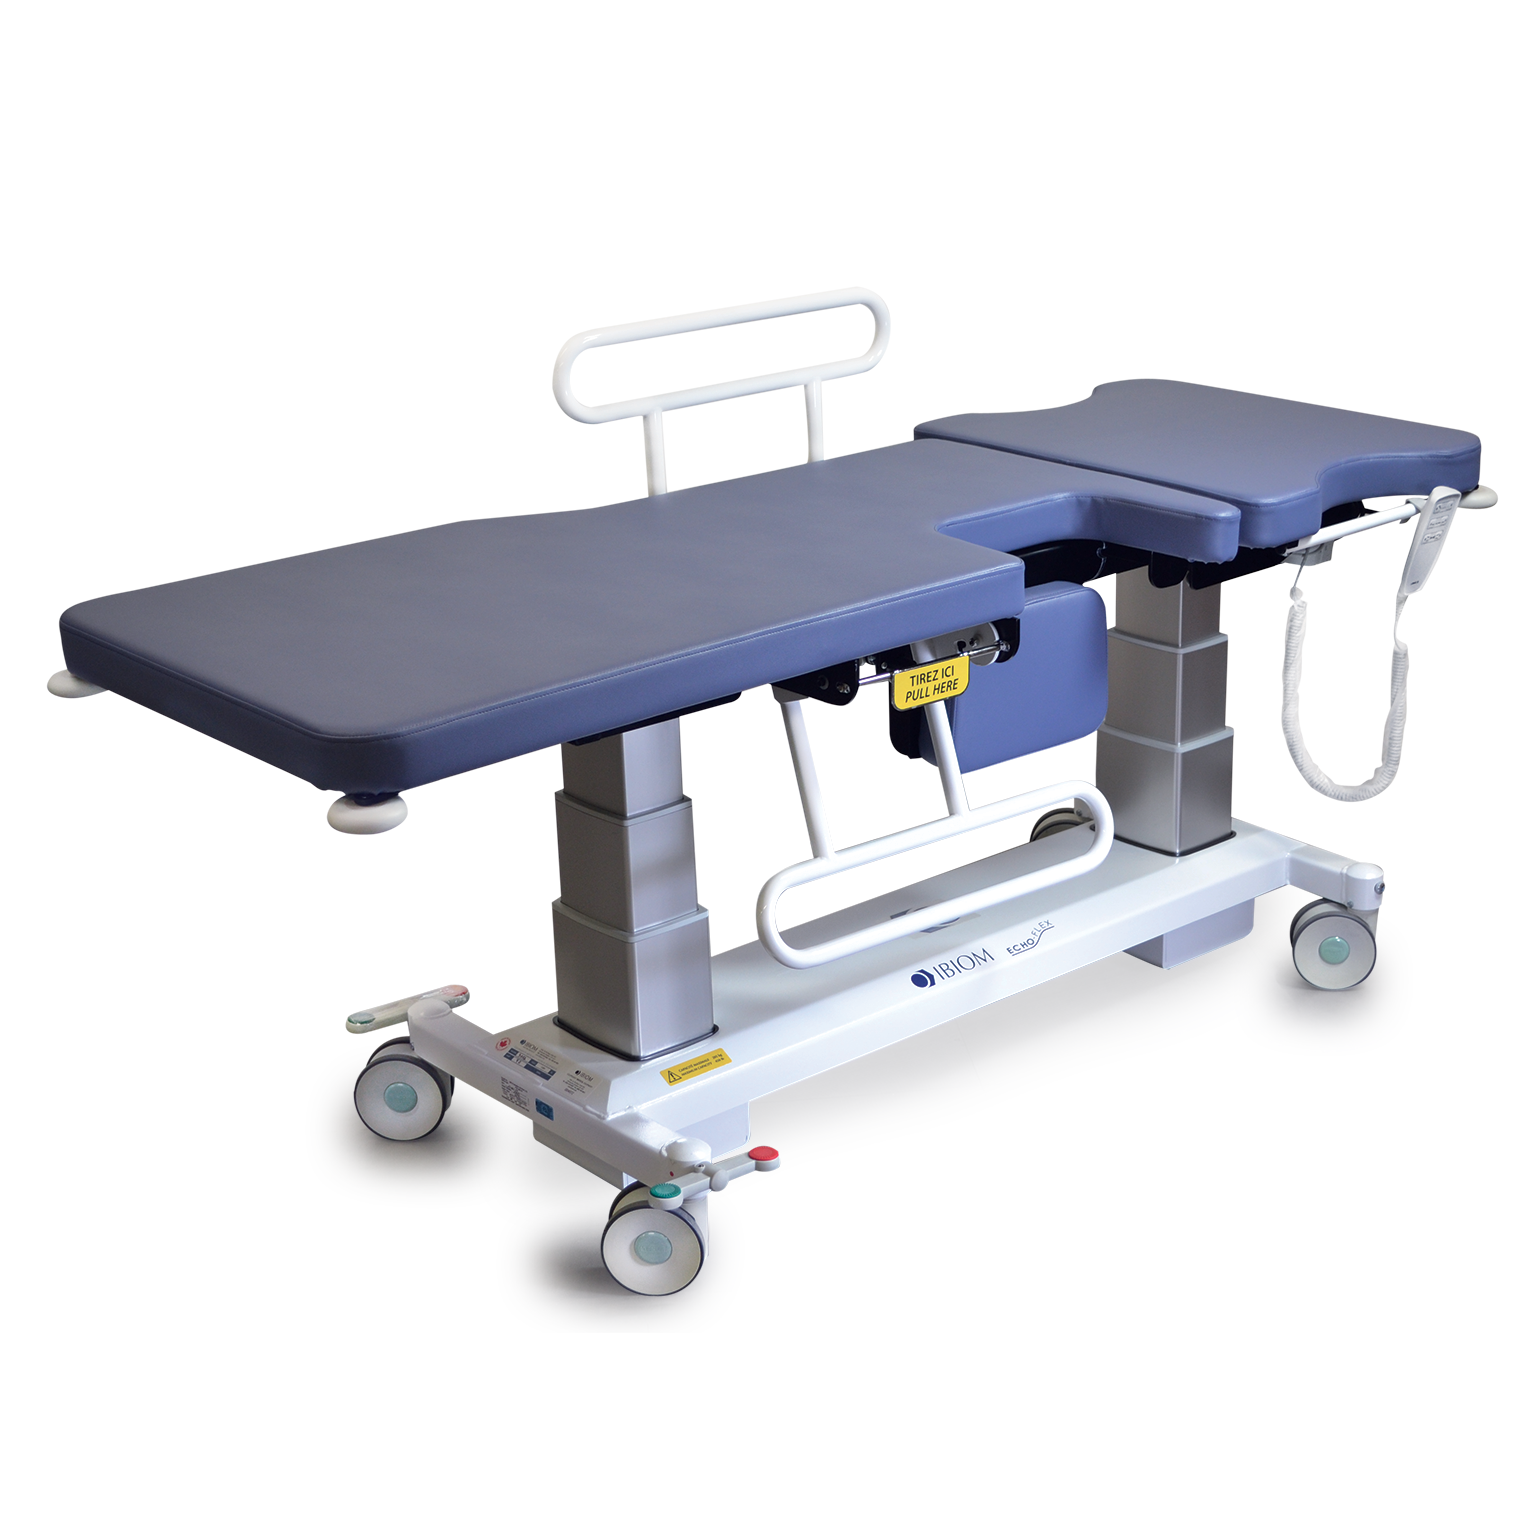 Echo-flex 5002 CA-51 stretcher